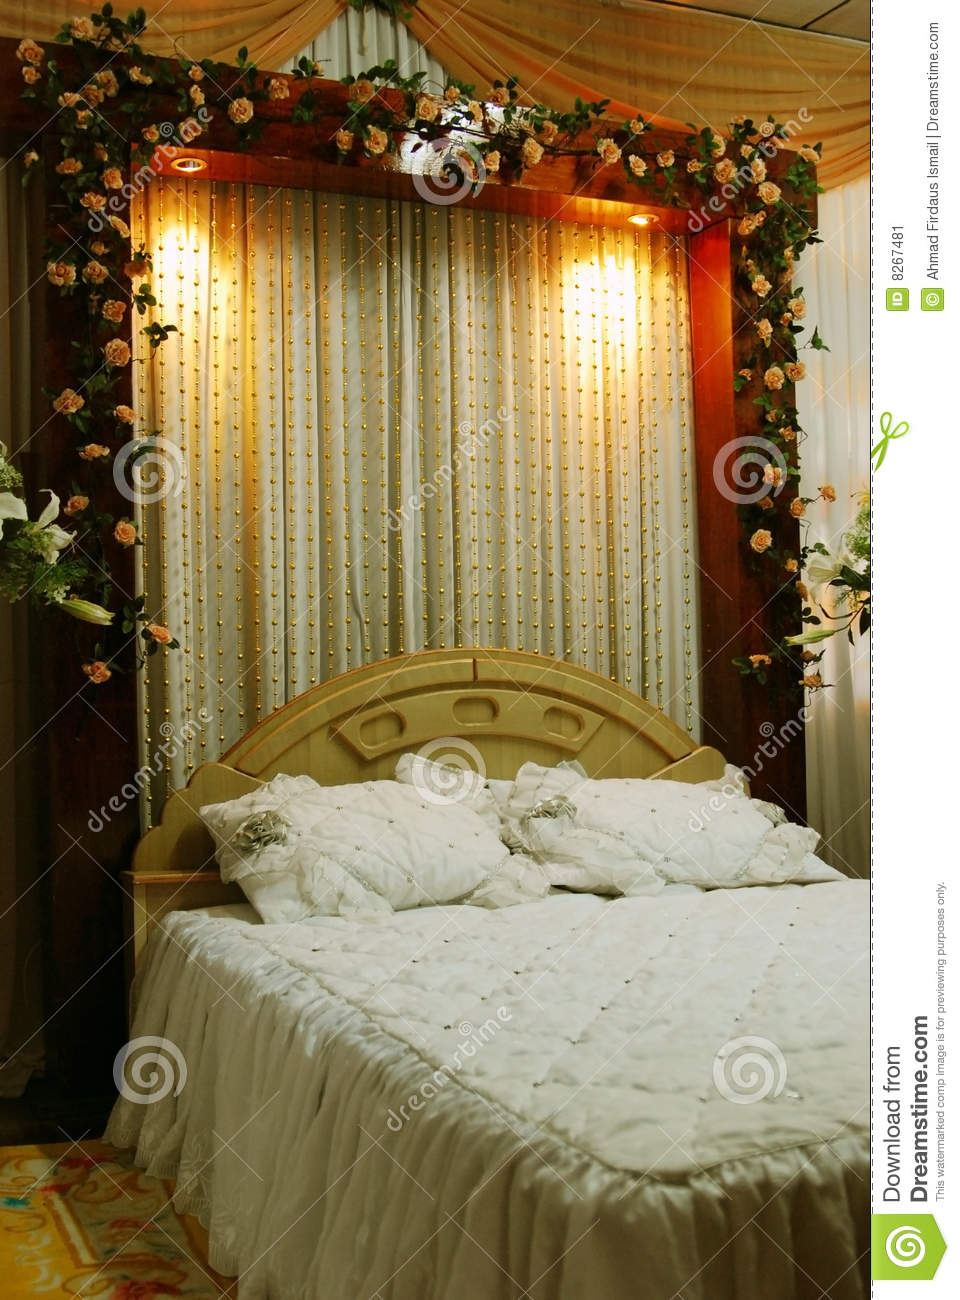 Wedding bed decoration stock image image 8267481 for Decoration image